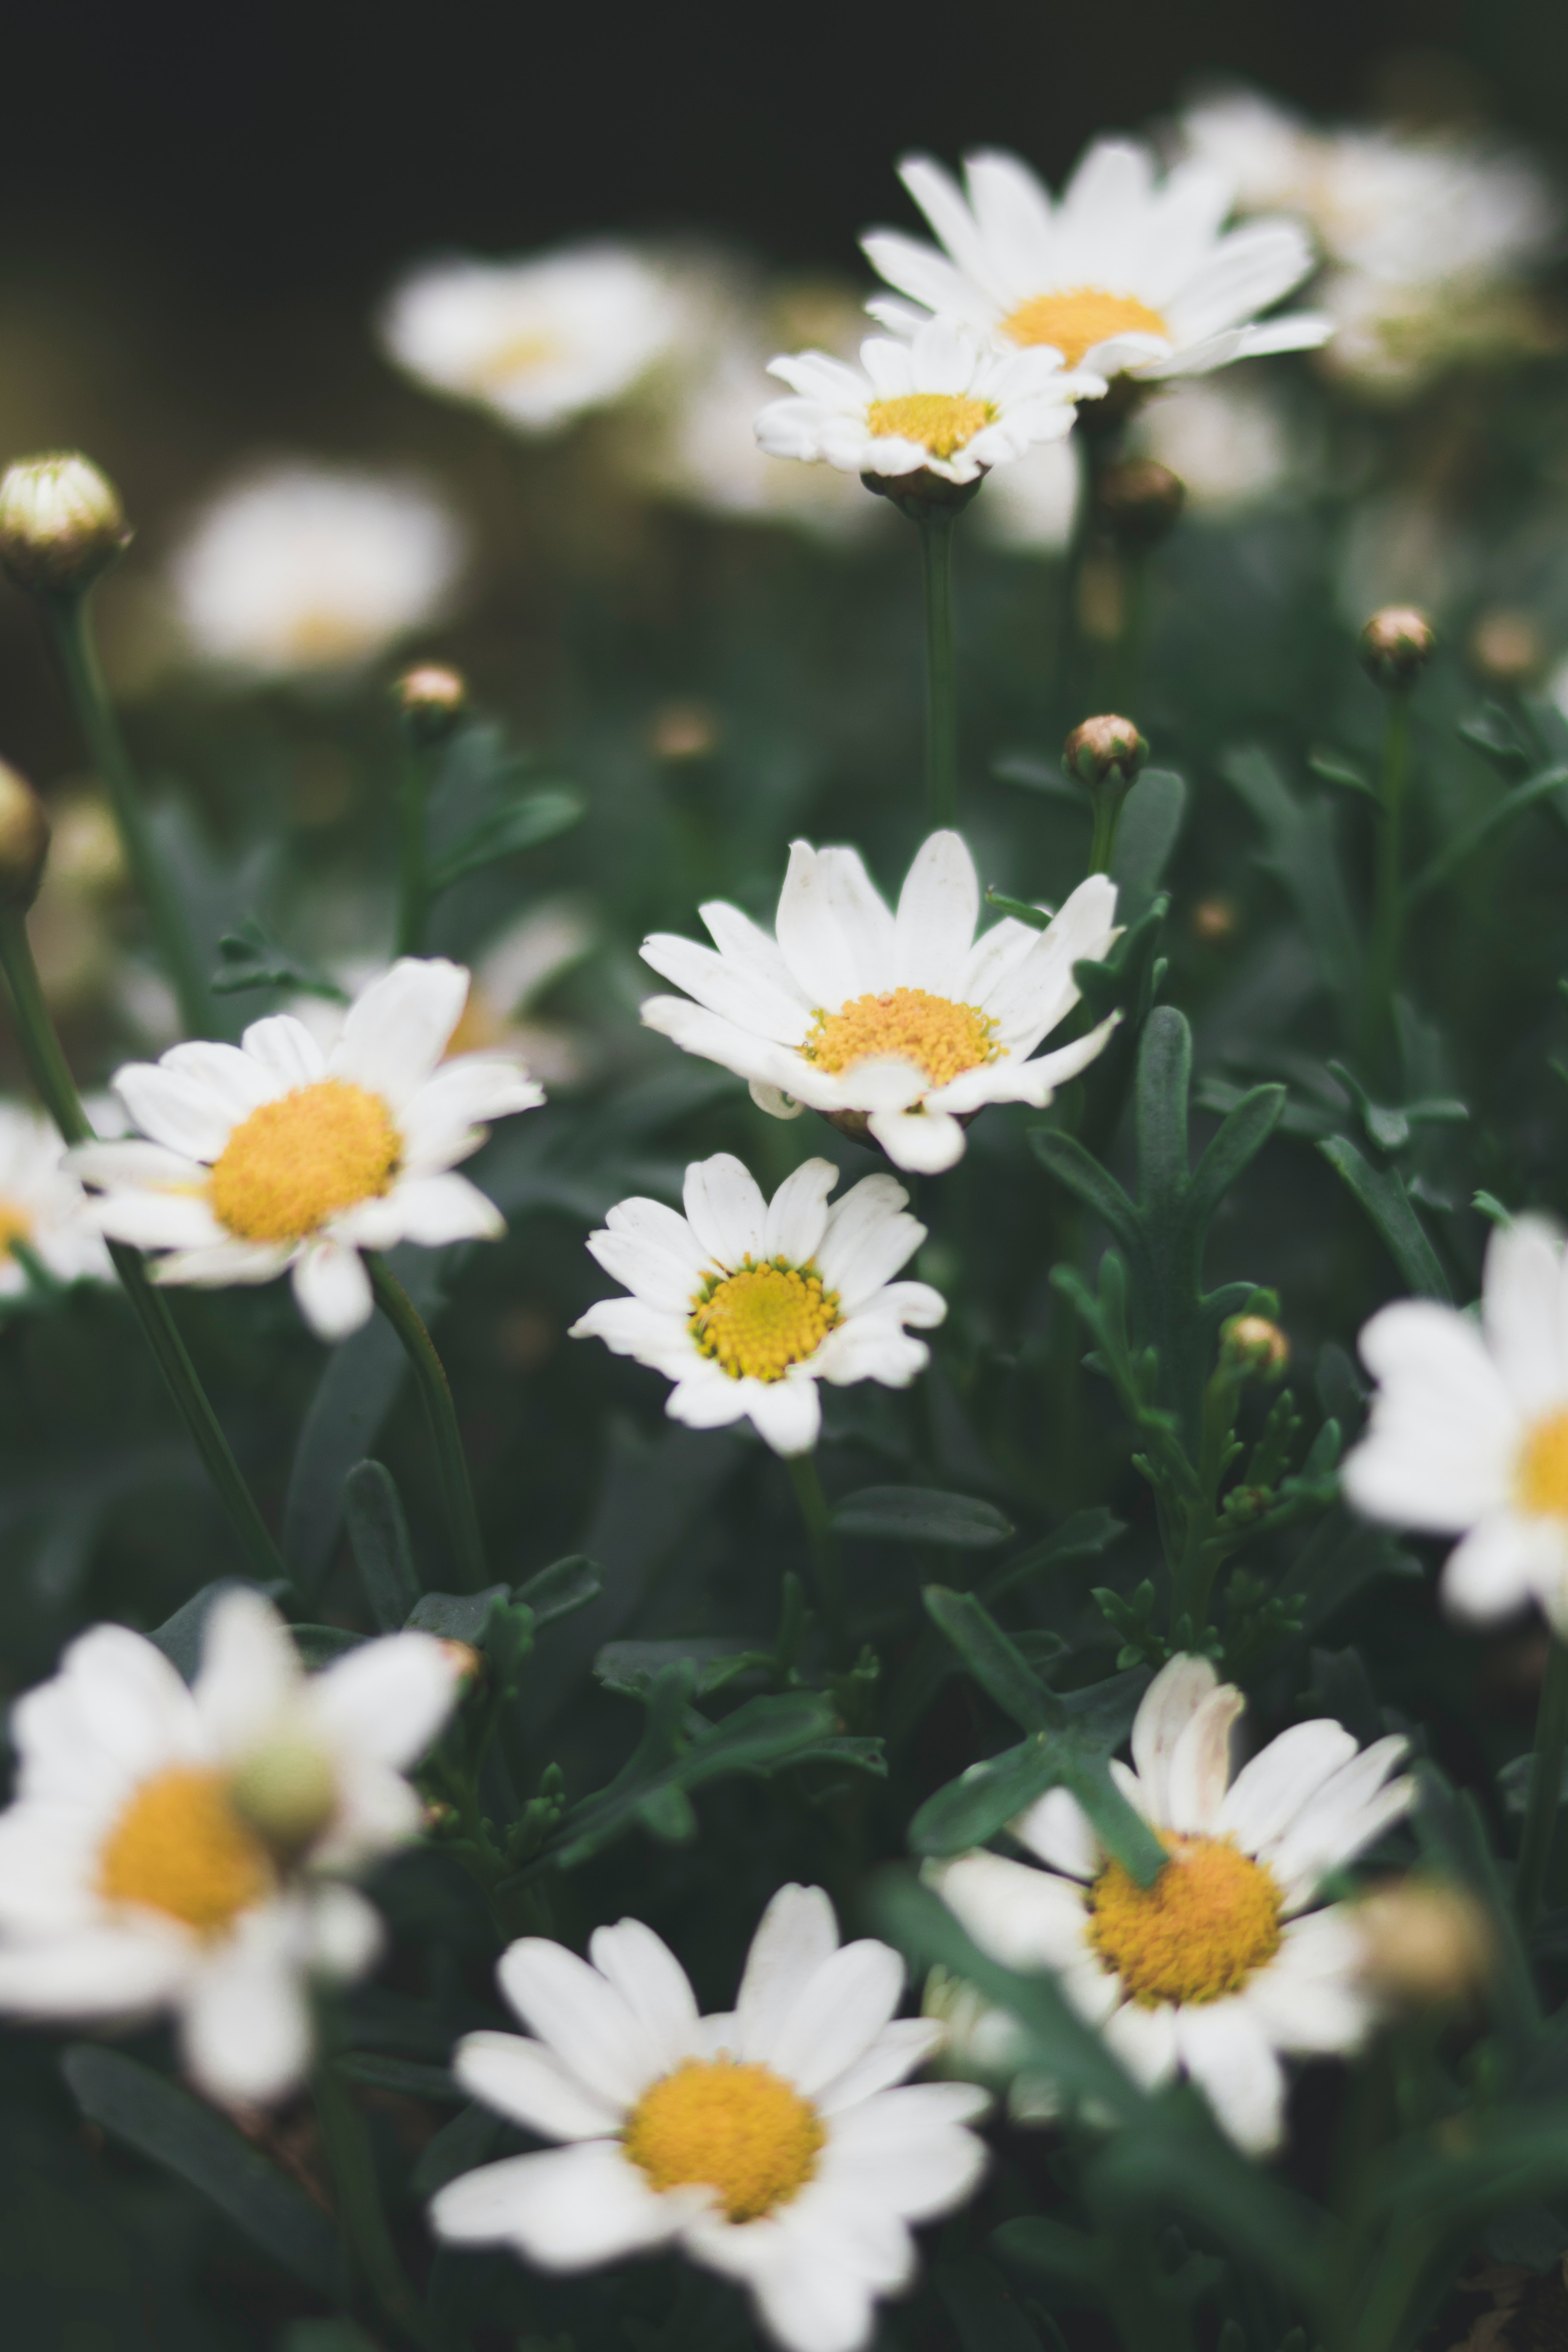 Shallow Focus Photograph Of Daisy Flower Free Stock Photo